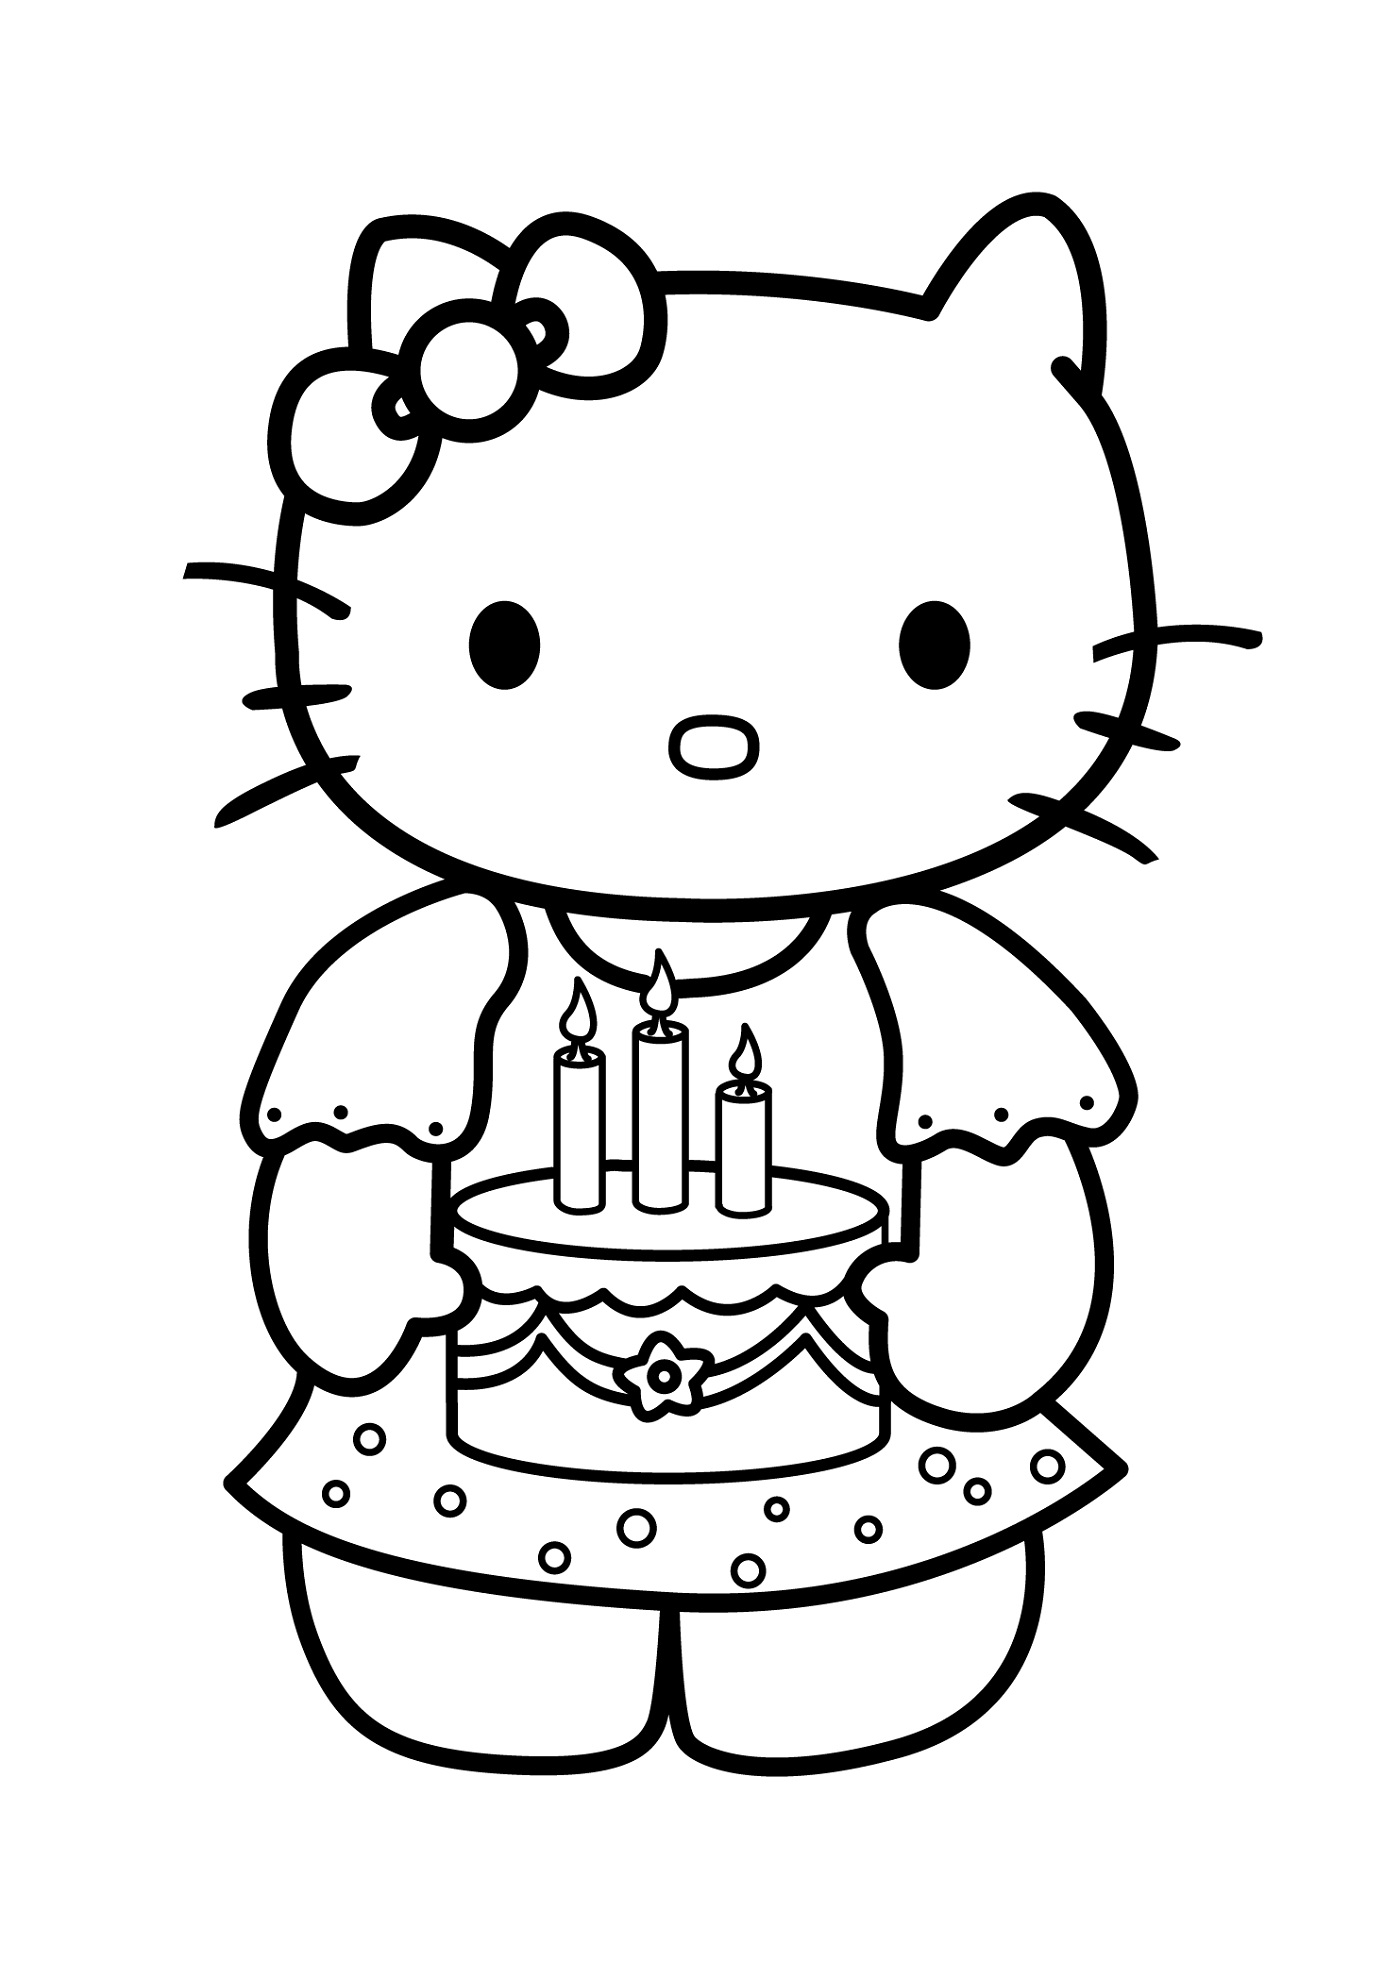 kitty coloring 8 very pretty disney hello kitty cartoon coloring pages kitty coloring